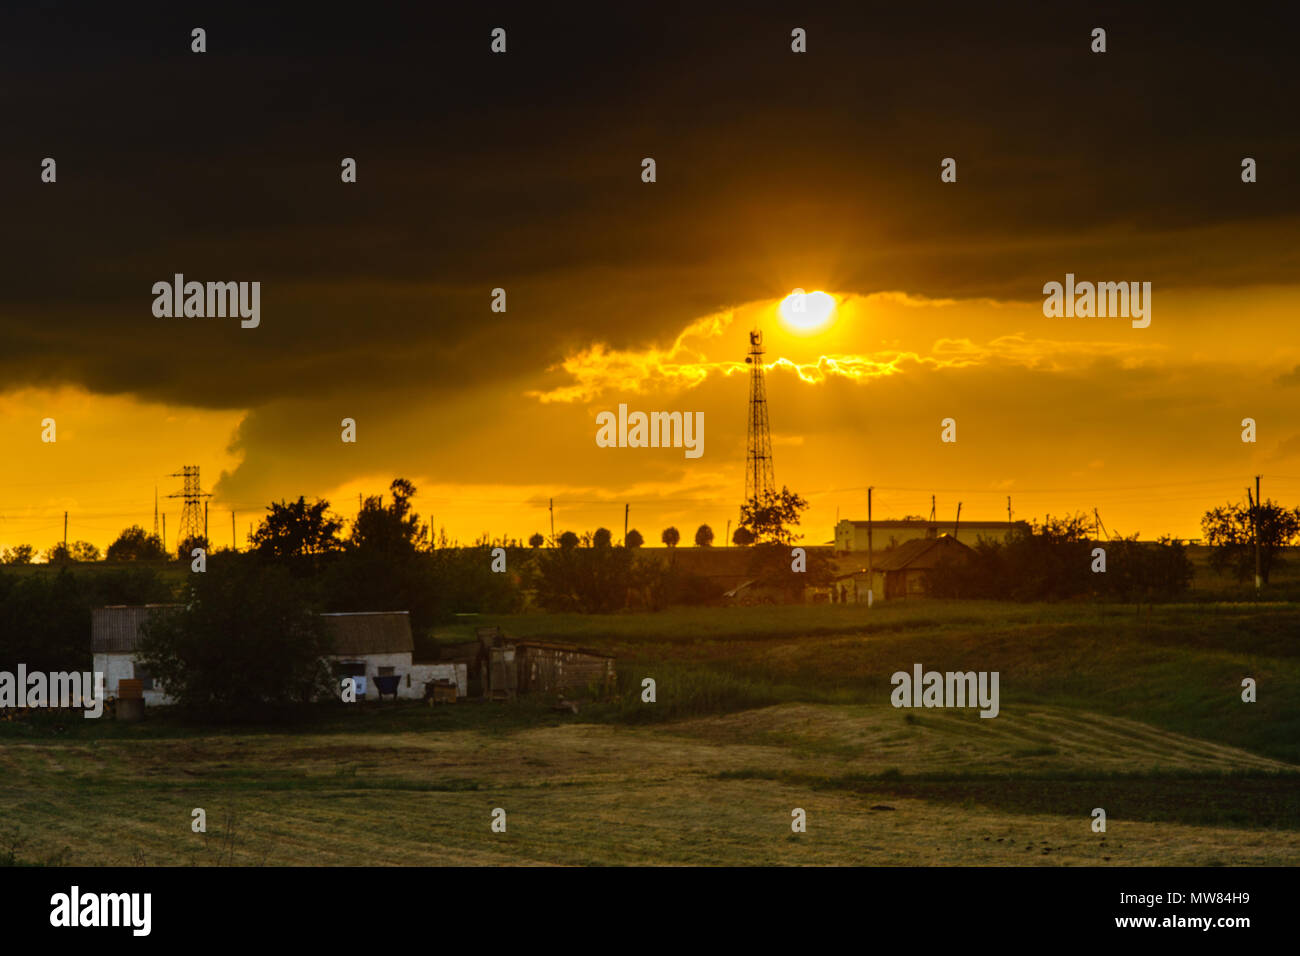 sunset over the field with houses in the village - Stock Image